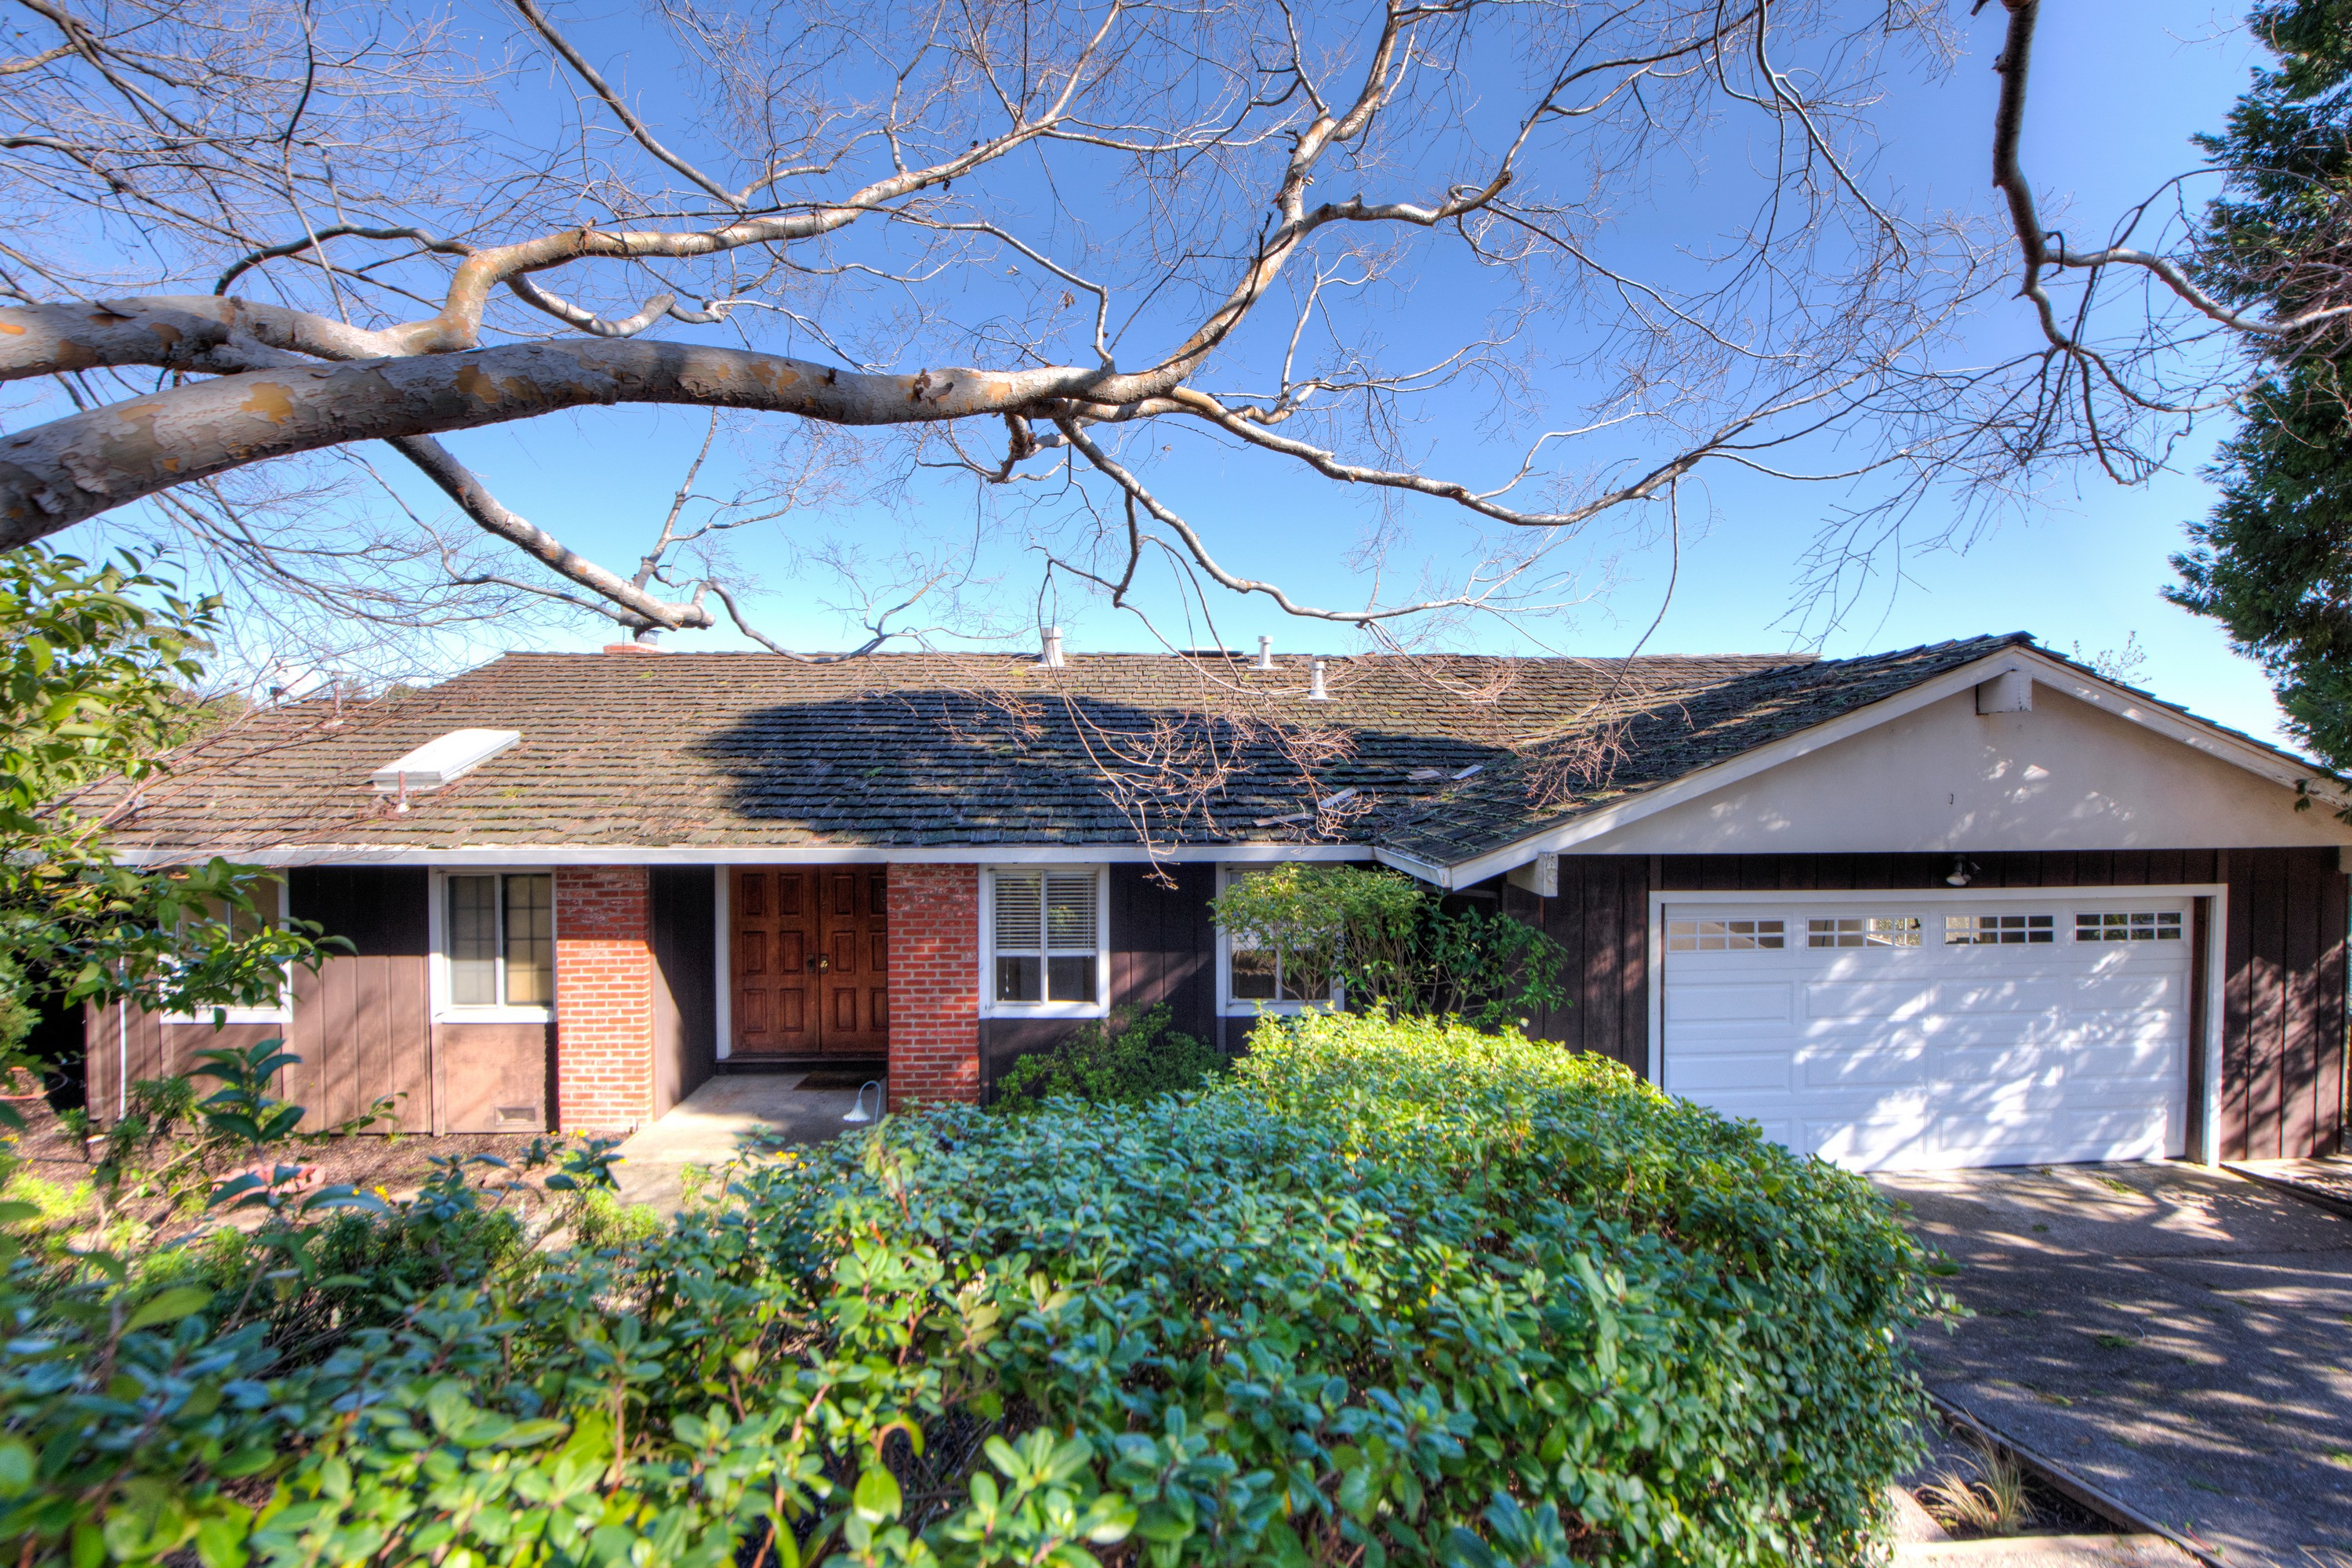 Single Family Home for Sale at Panoramic Views, Great Schools, Super Micro-Climate 360 Eliseo Drive Greenbrae, California 94904 United States